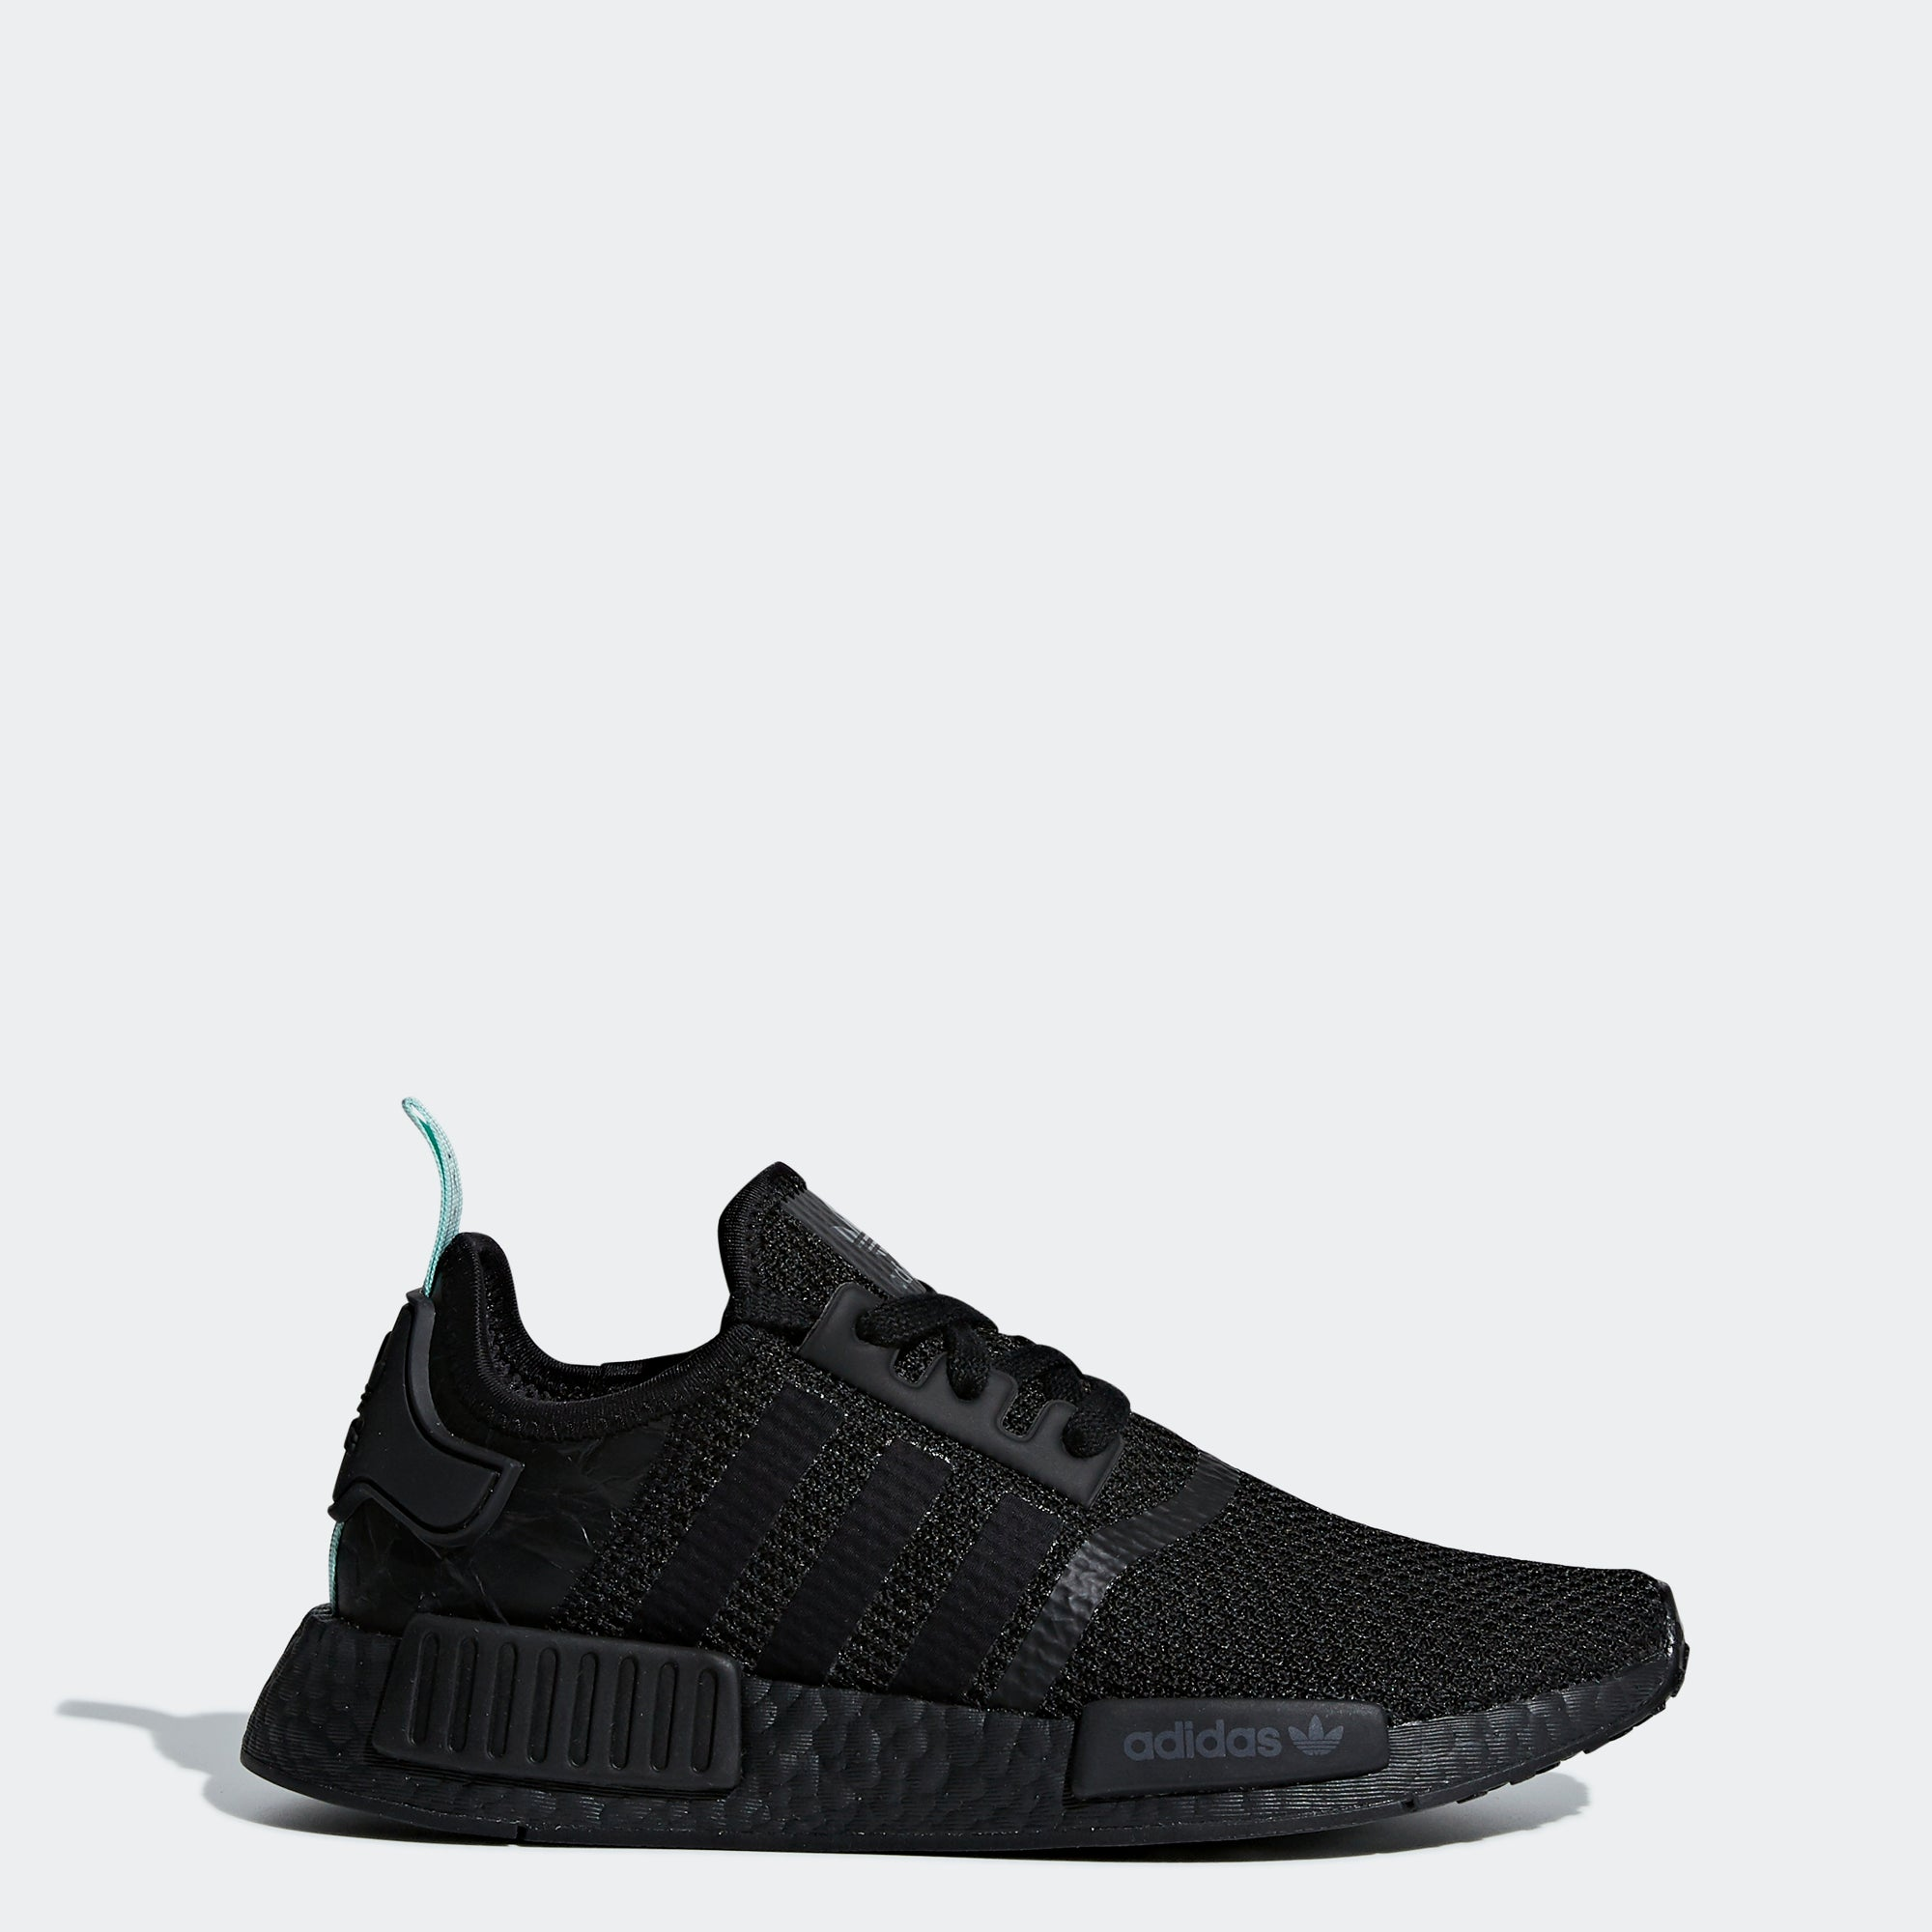 check out 878c9 43258 Women s Adidas NMD R1 Shoes Black Clear Mint